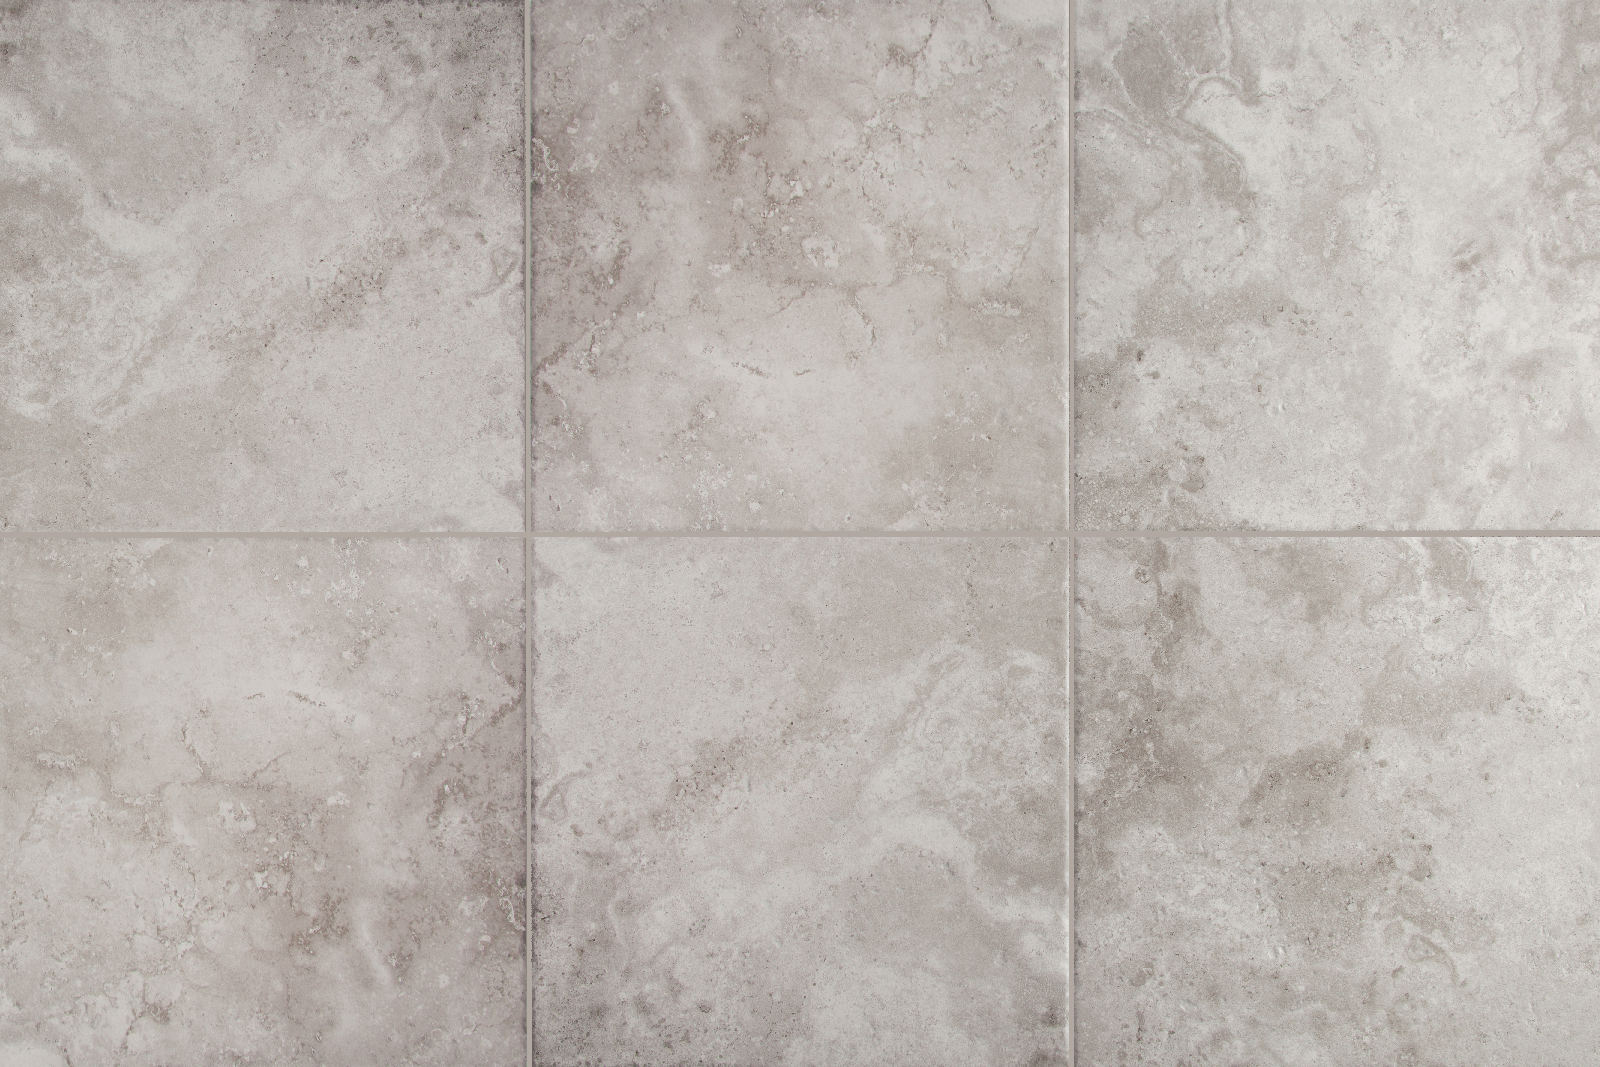 Tuscan classic 18 x 18 gray porcelain tile storka tuscan classic in color gray dailygadgetfo Image collections